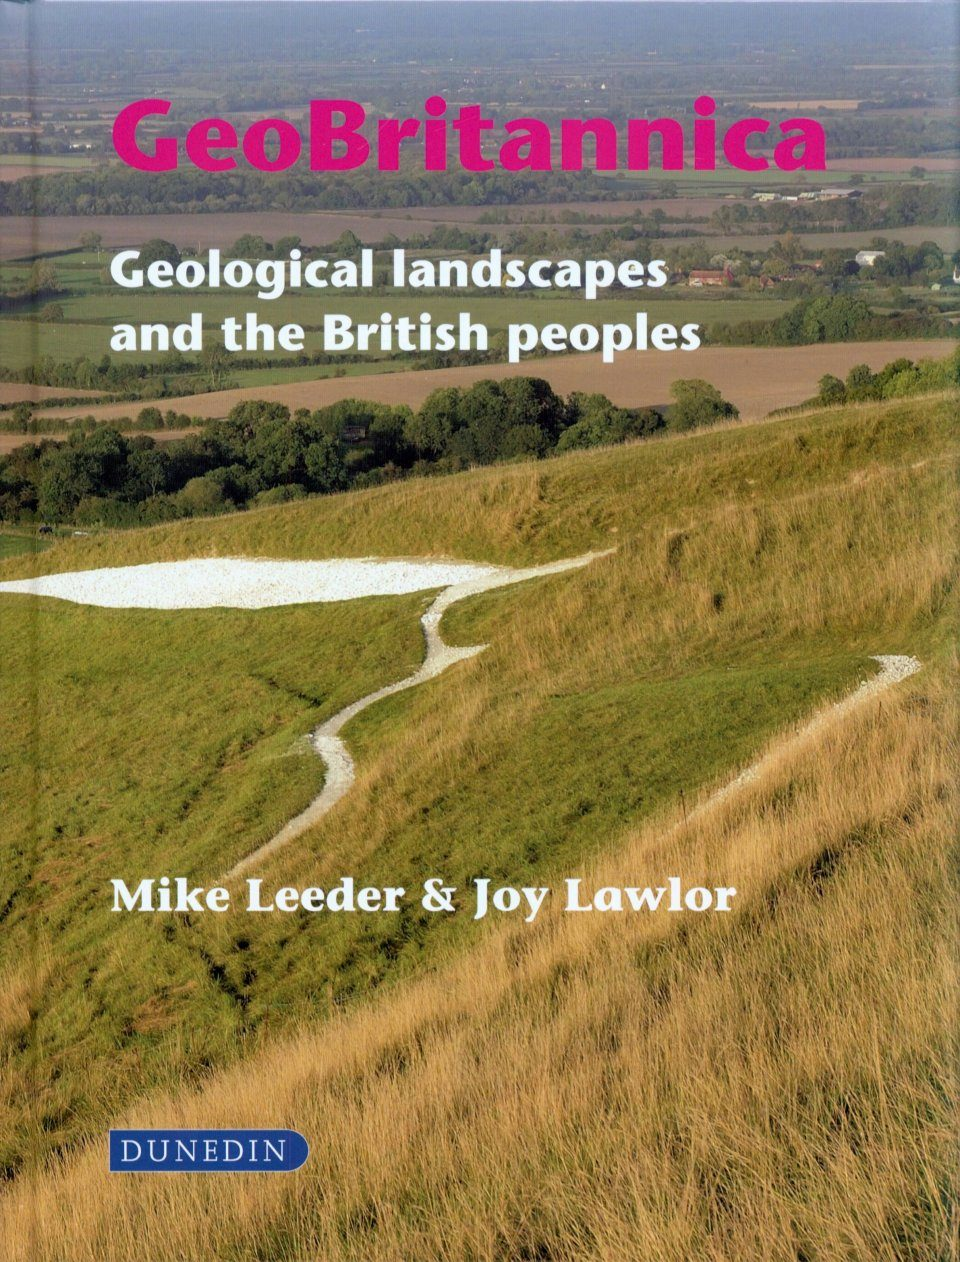 GeoBritannica: Geological Landscapes and the British Peoples